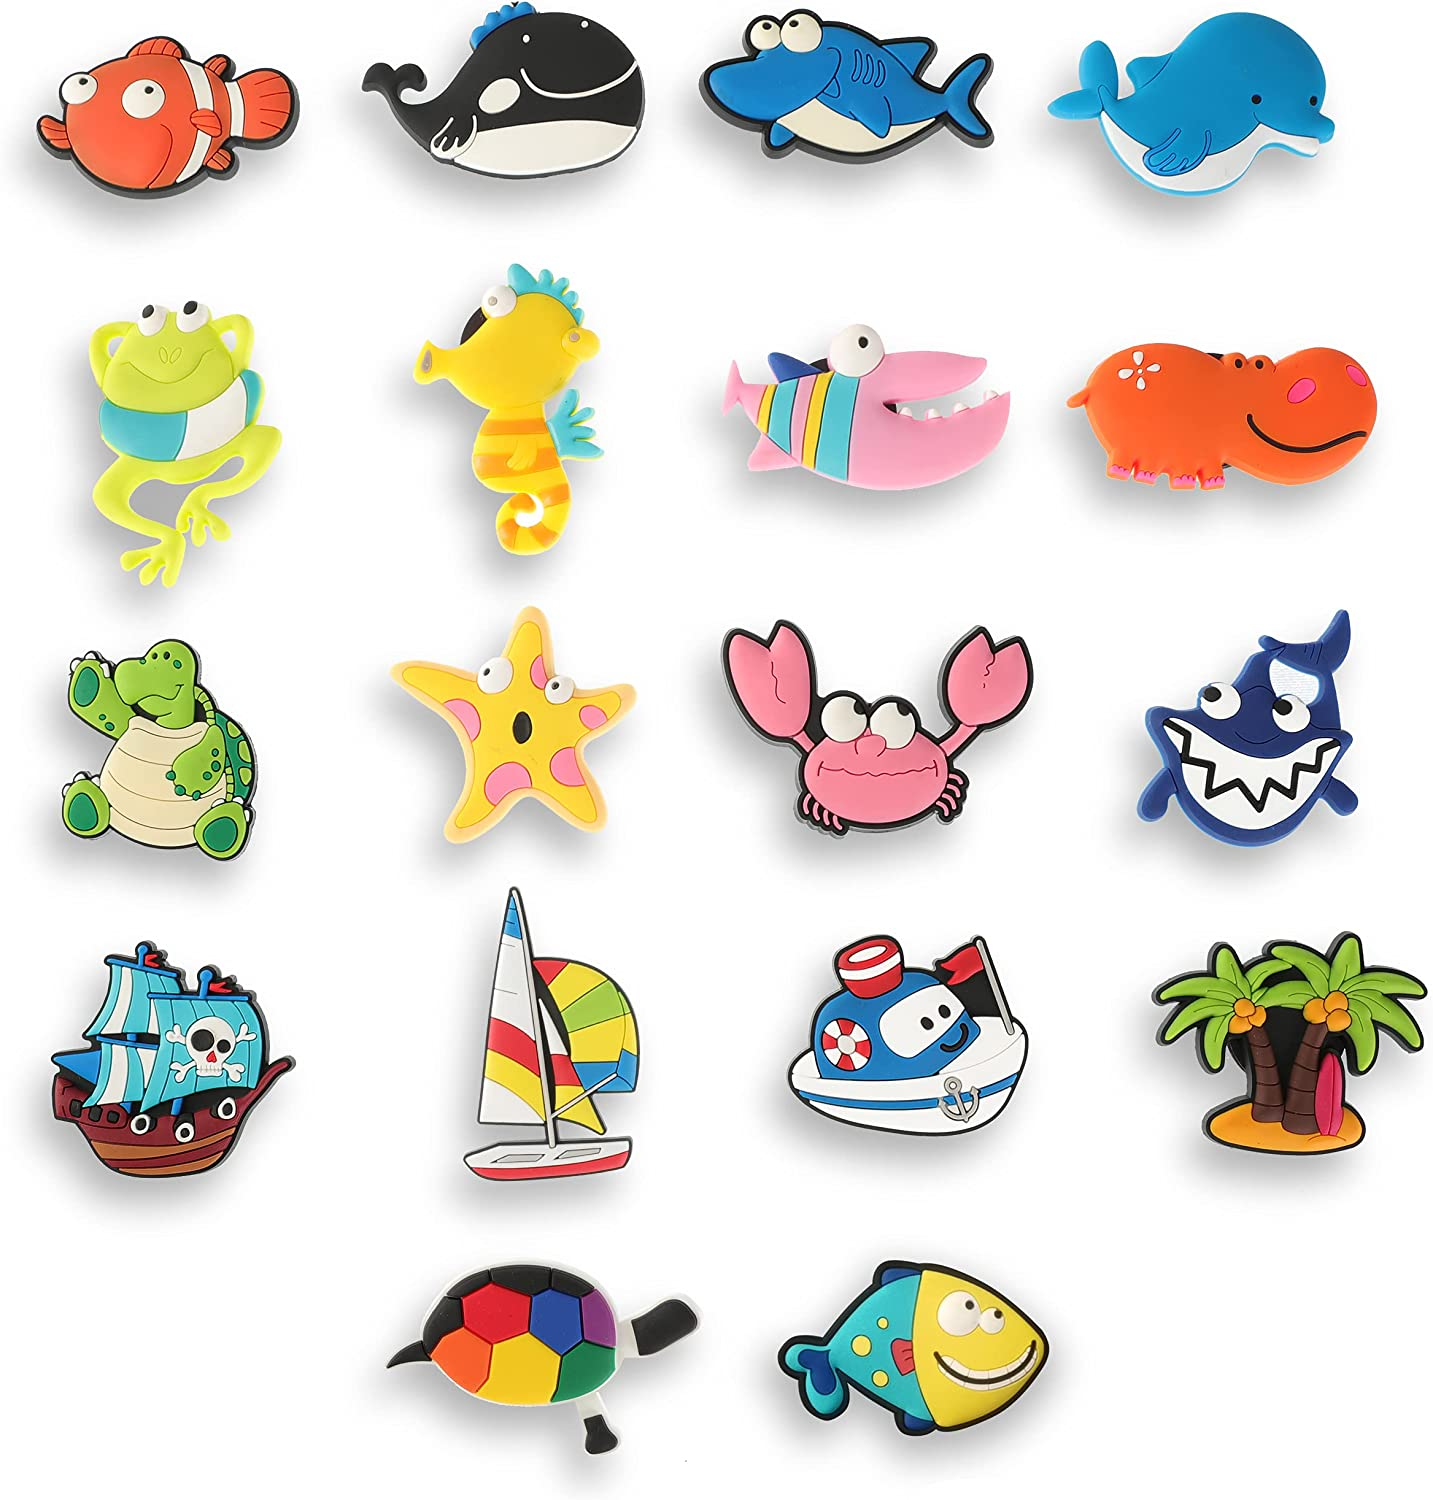 Max 48% OFF Fridge Magnets for Kids Memphis Mall 18 Magne Animals Pack Sea